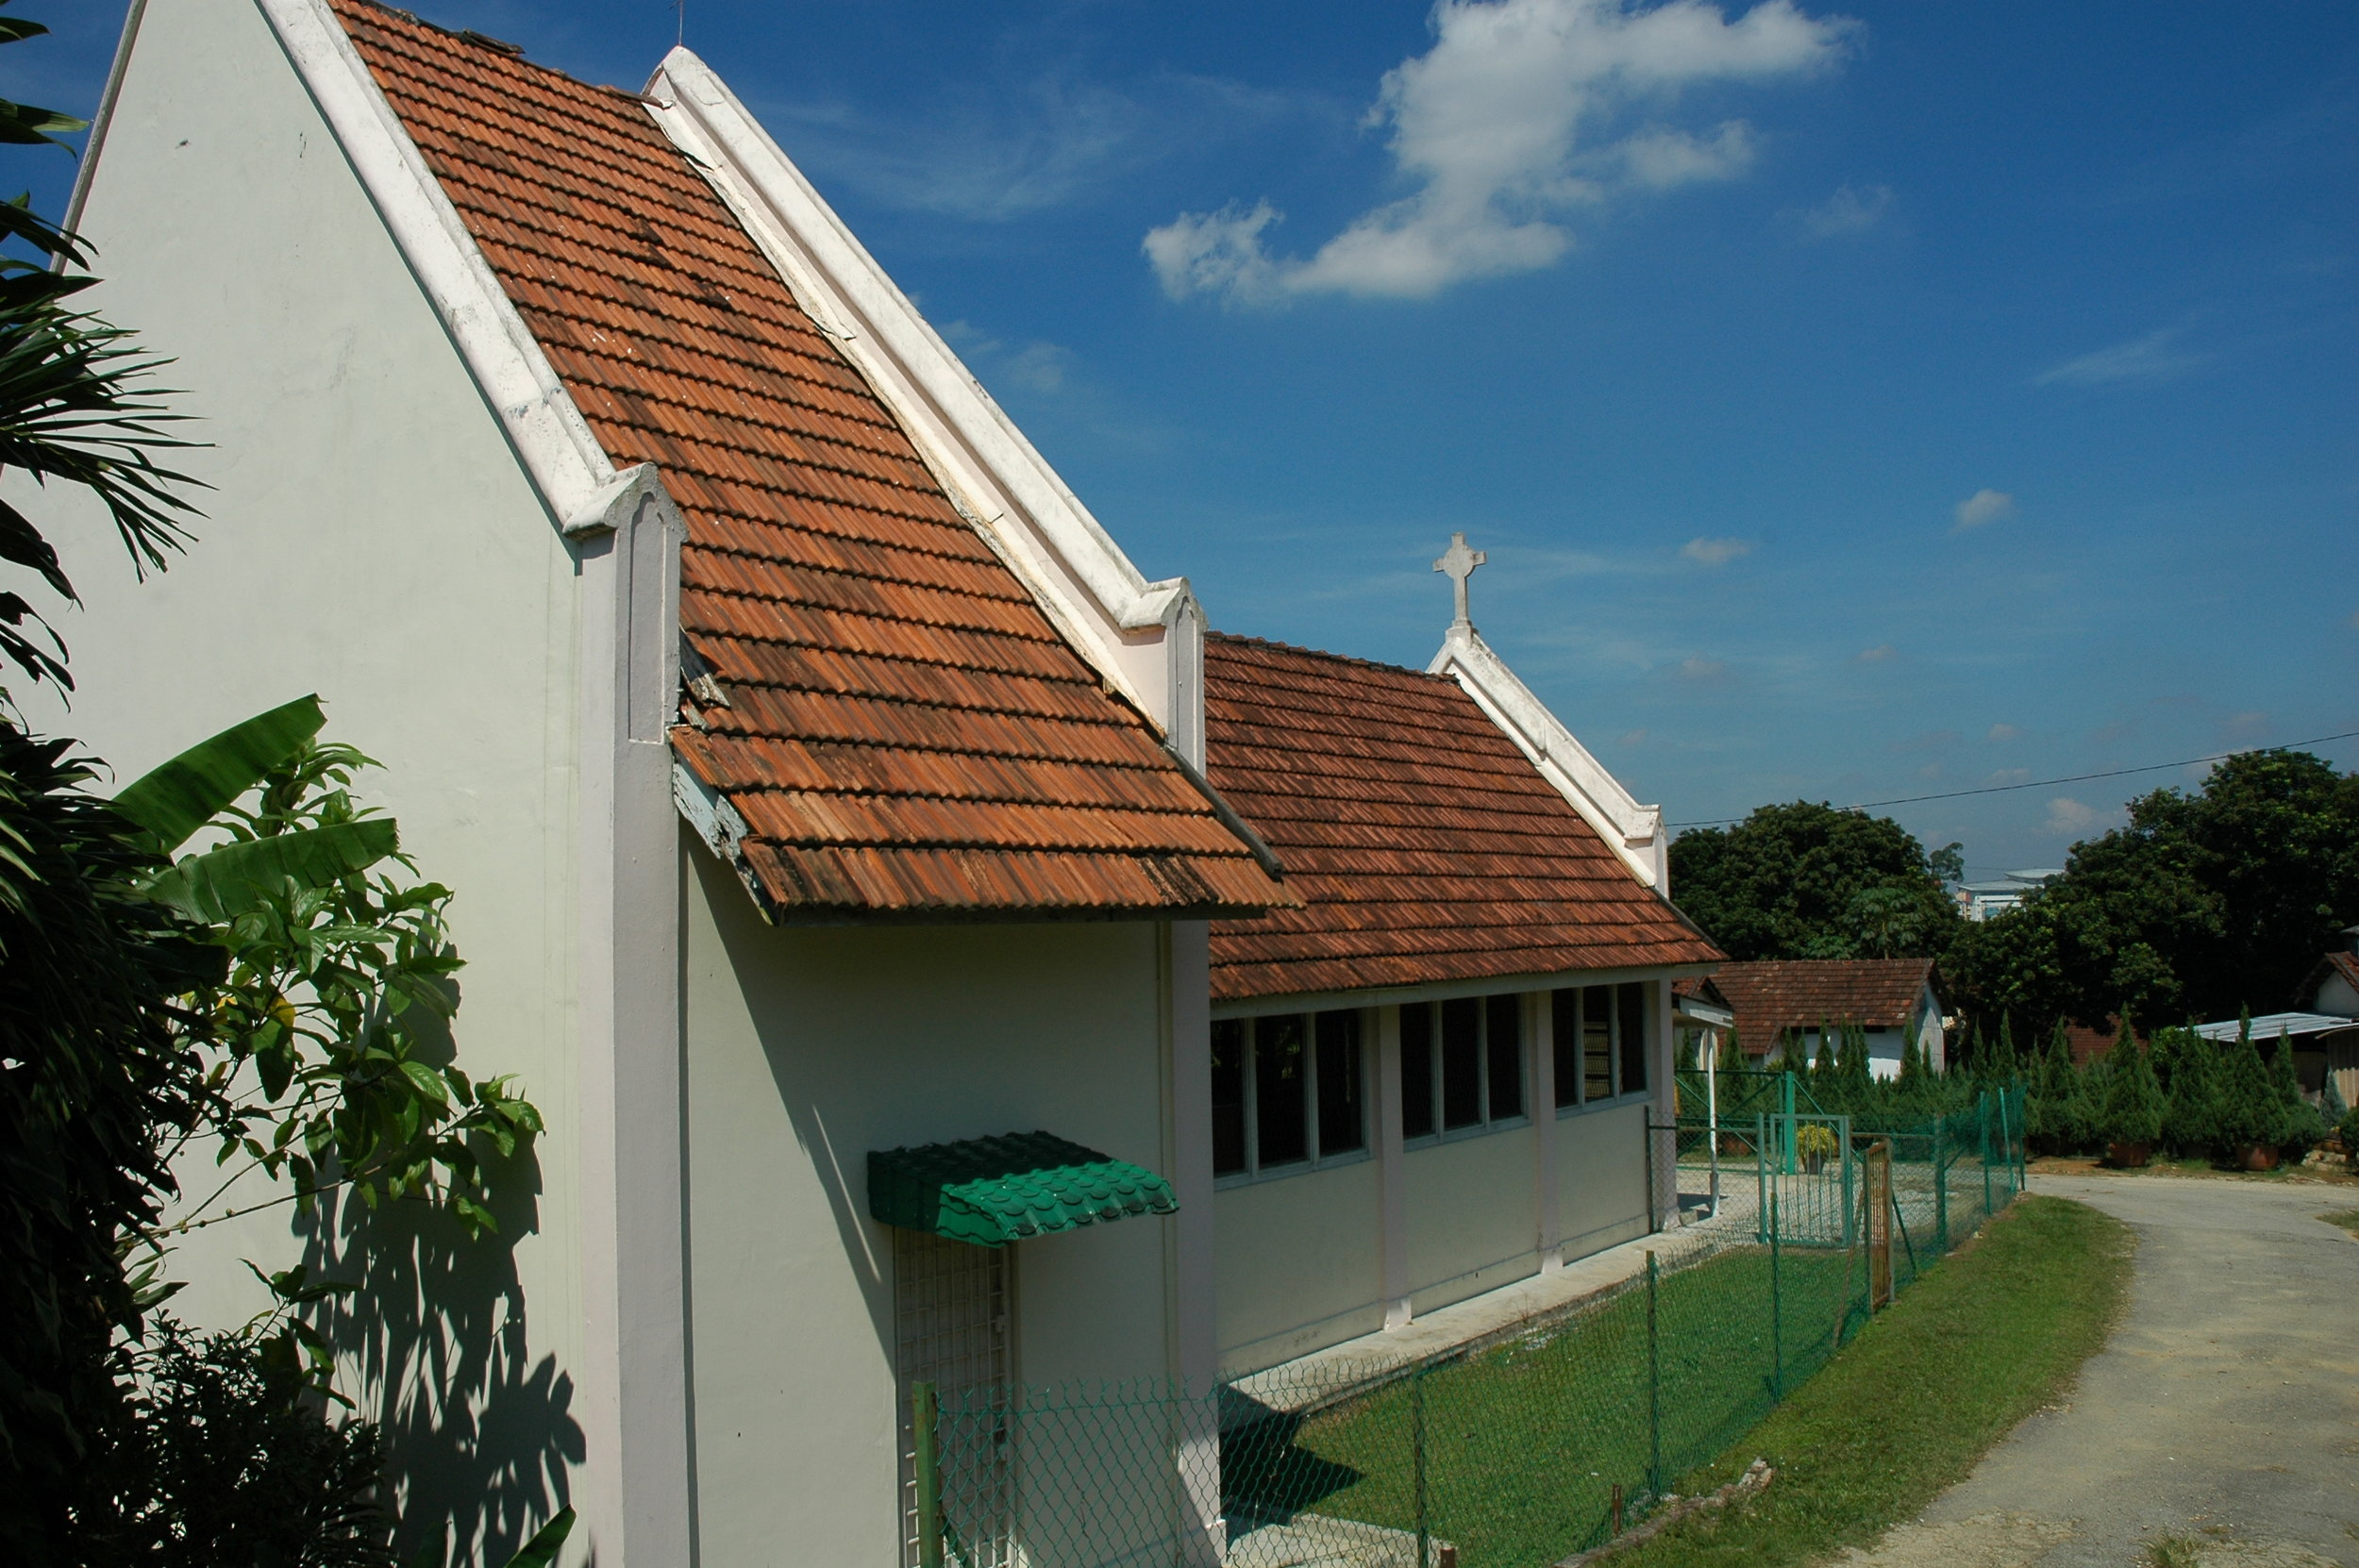 Roman Catholic Church at the East Section. (photo by Dr Lim Yong Long)